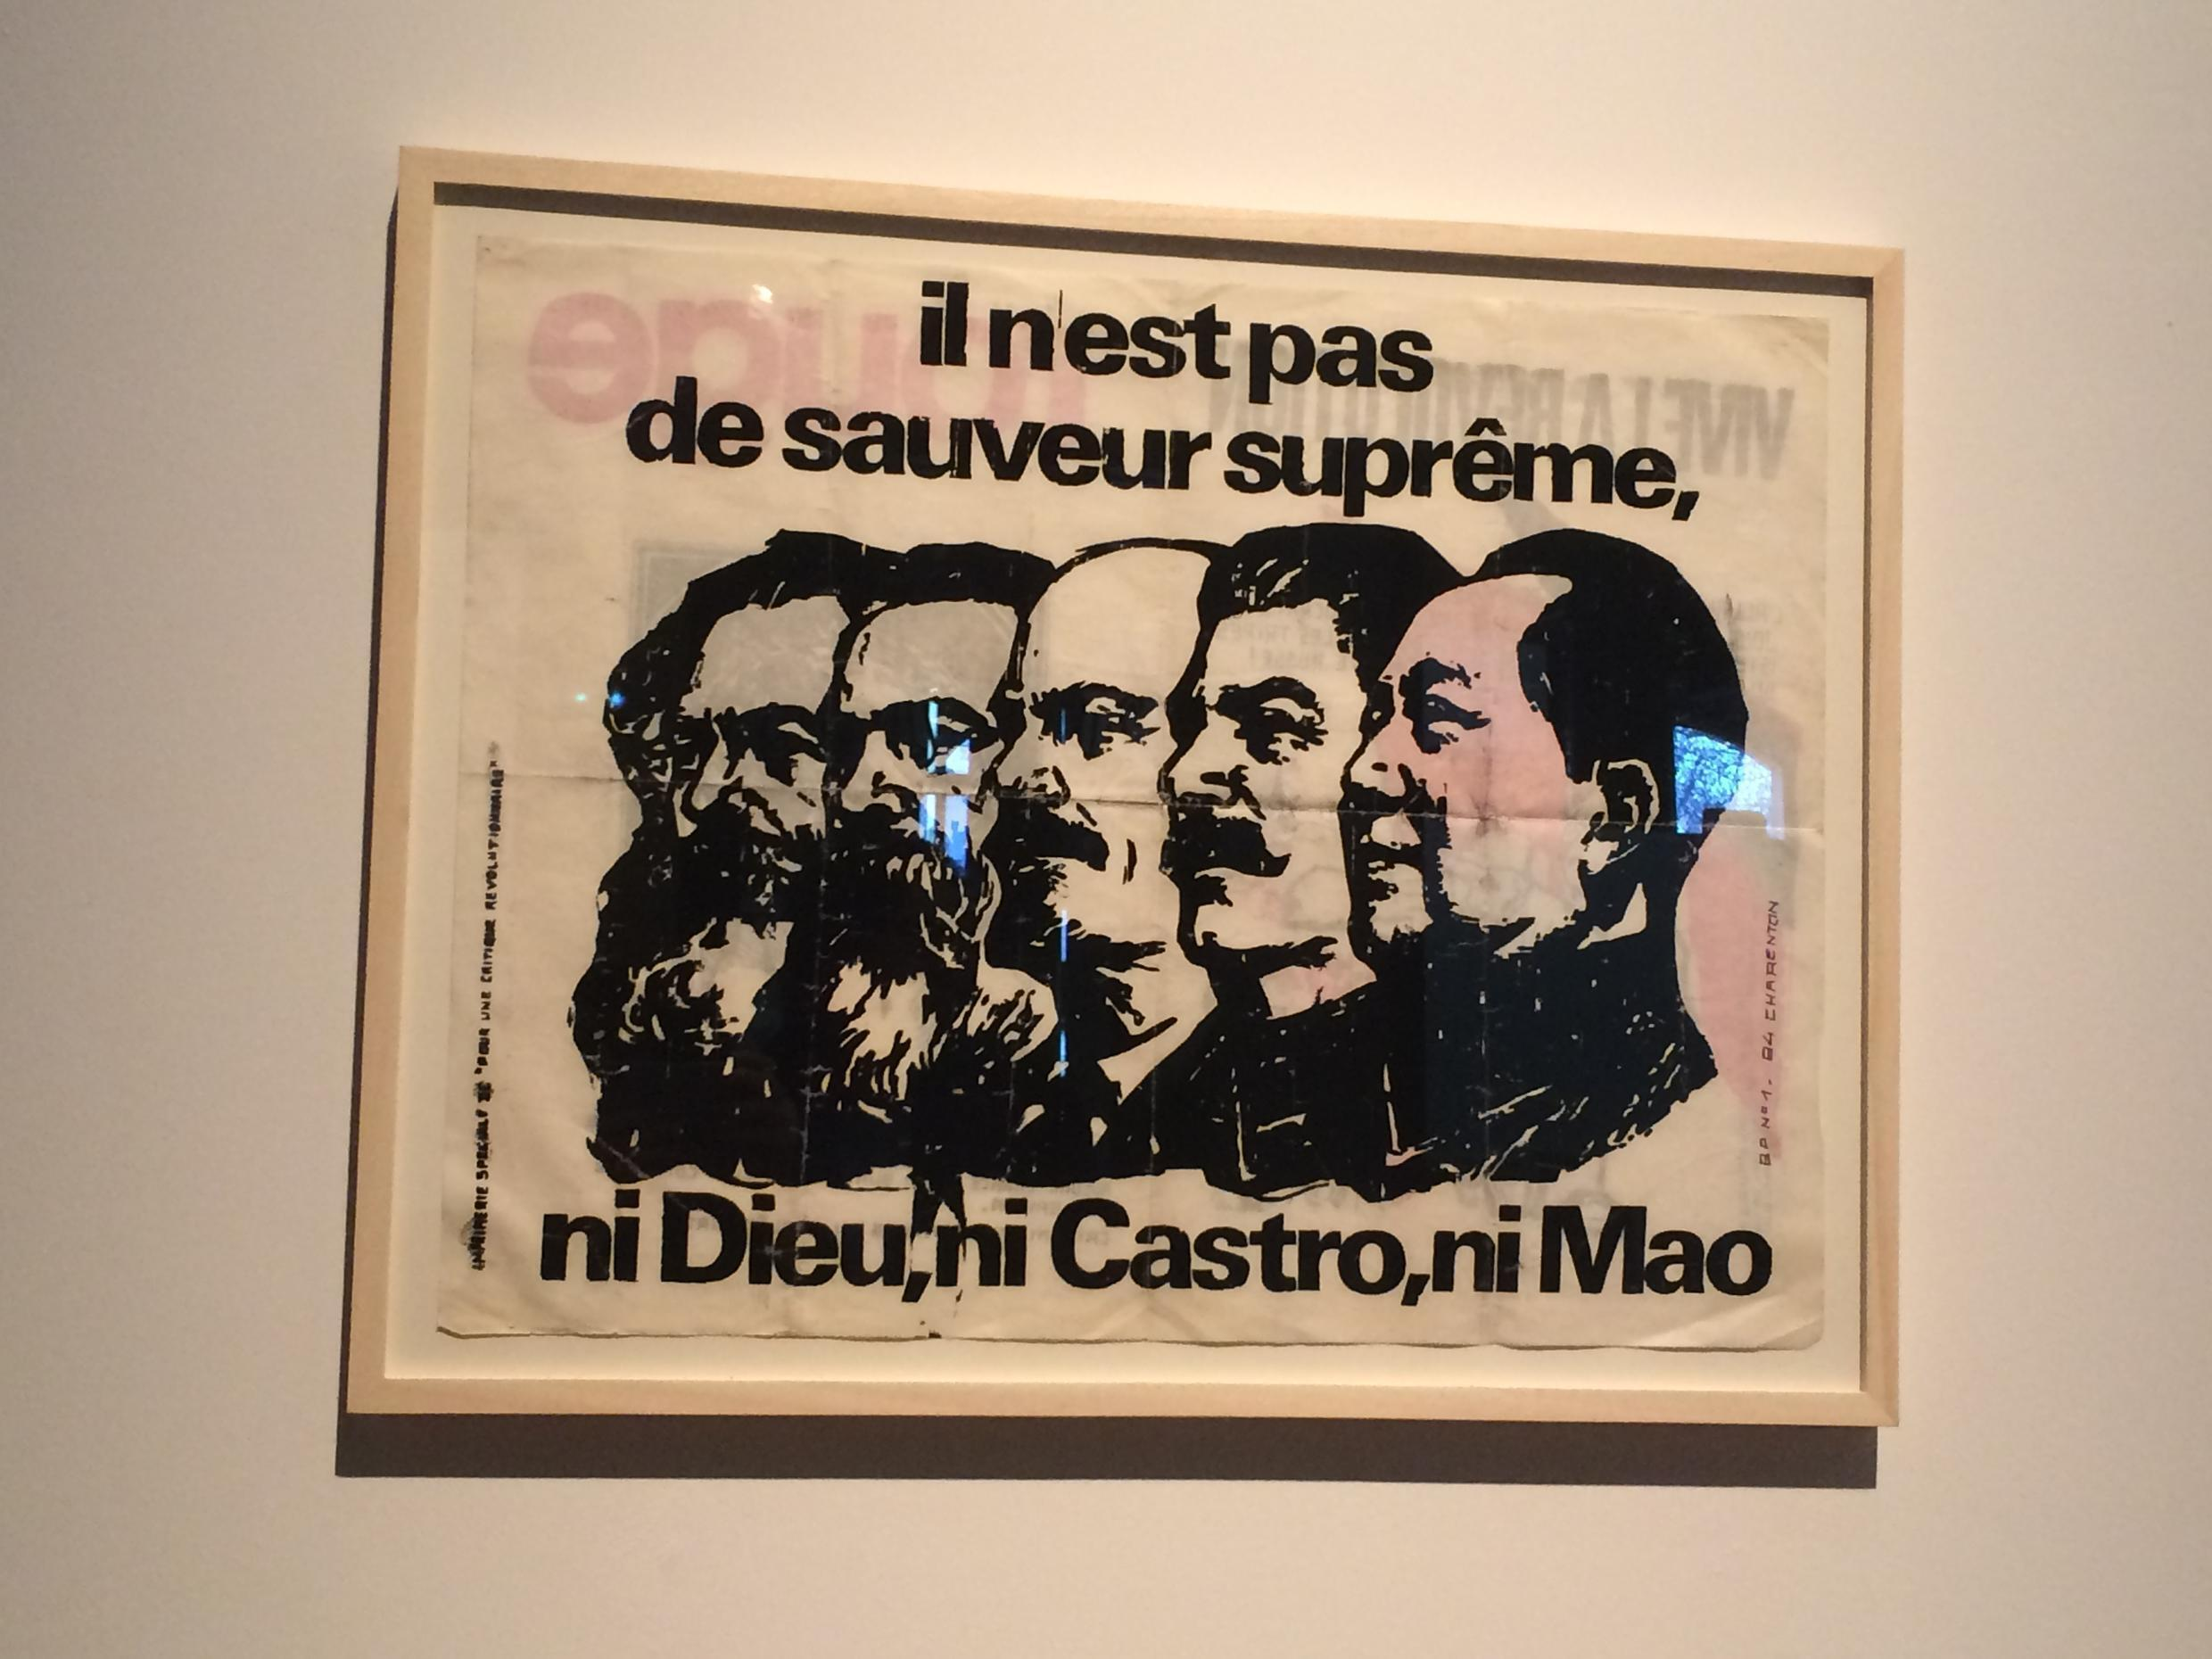 """""""There is no supreme authority, neither God, nor Castro, nor Mao"""" (anonymous) questions Maoist ideology and... Buraglio's oeuvre"""